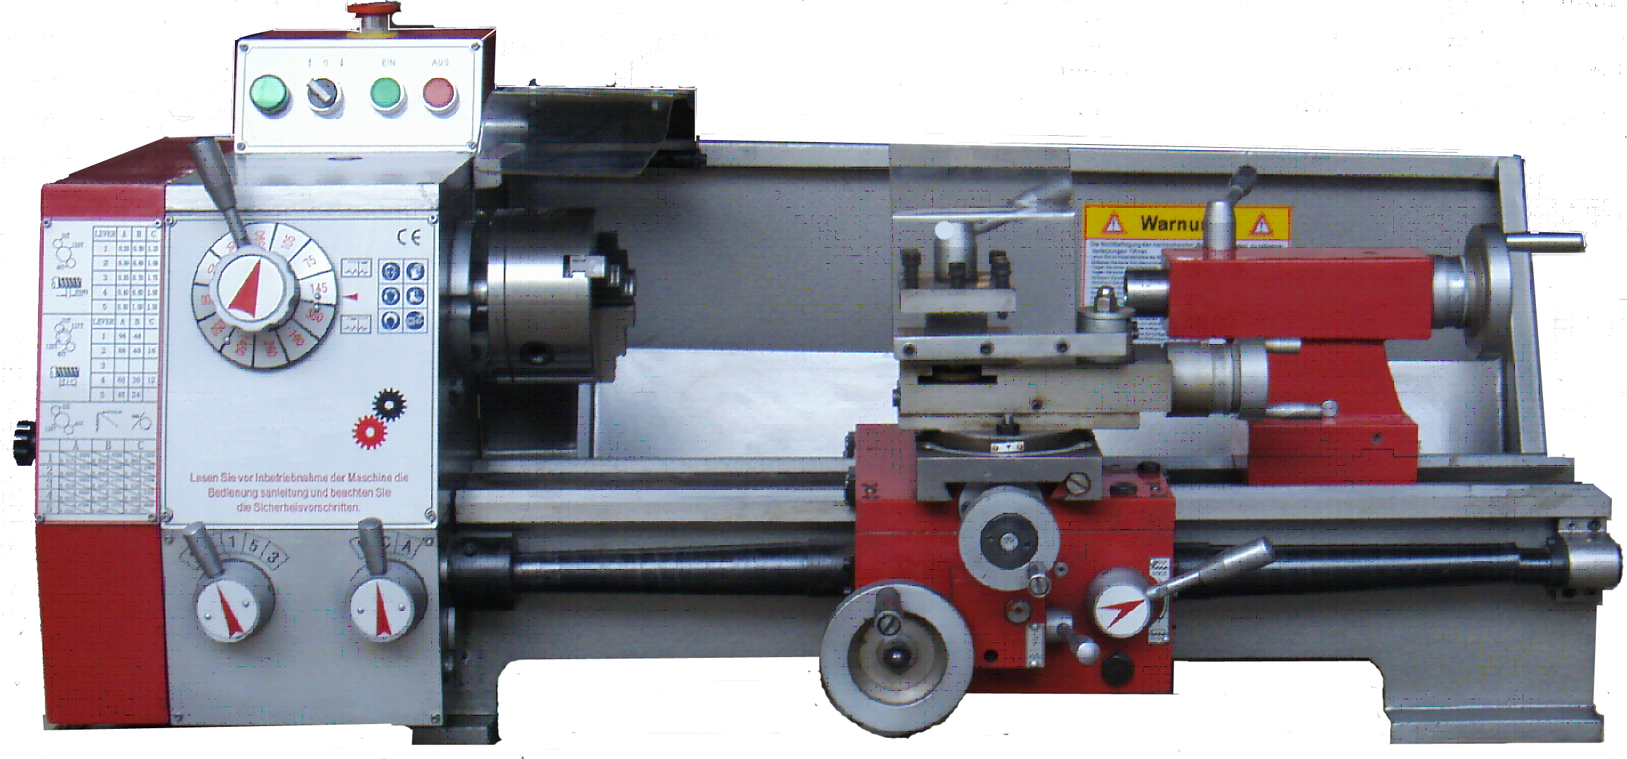 CN1 Training Lathe.png